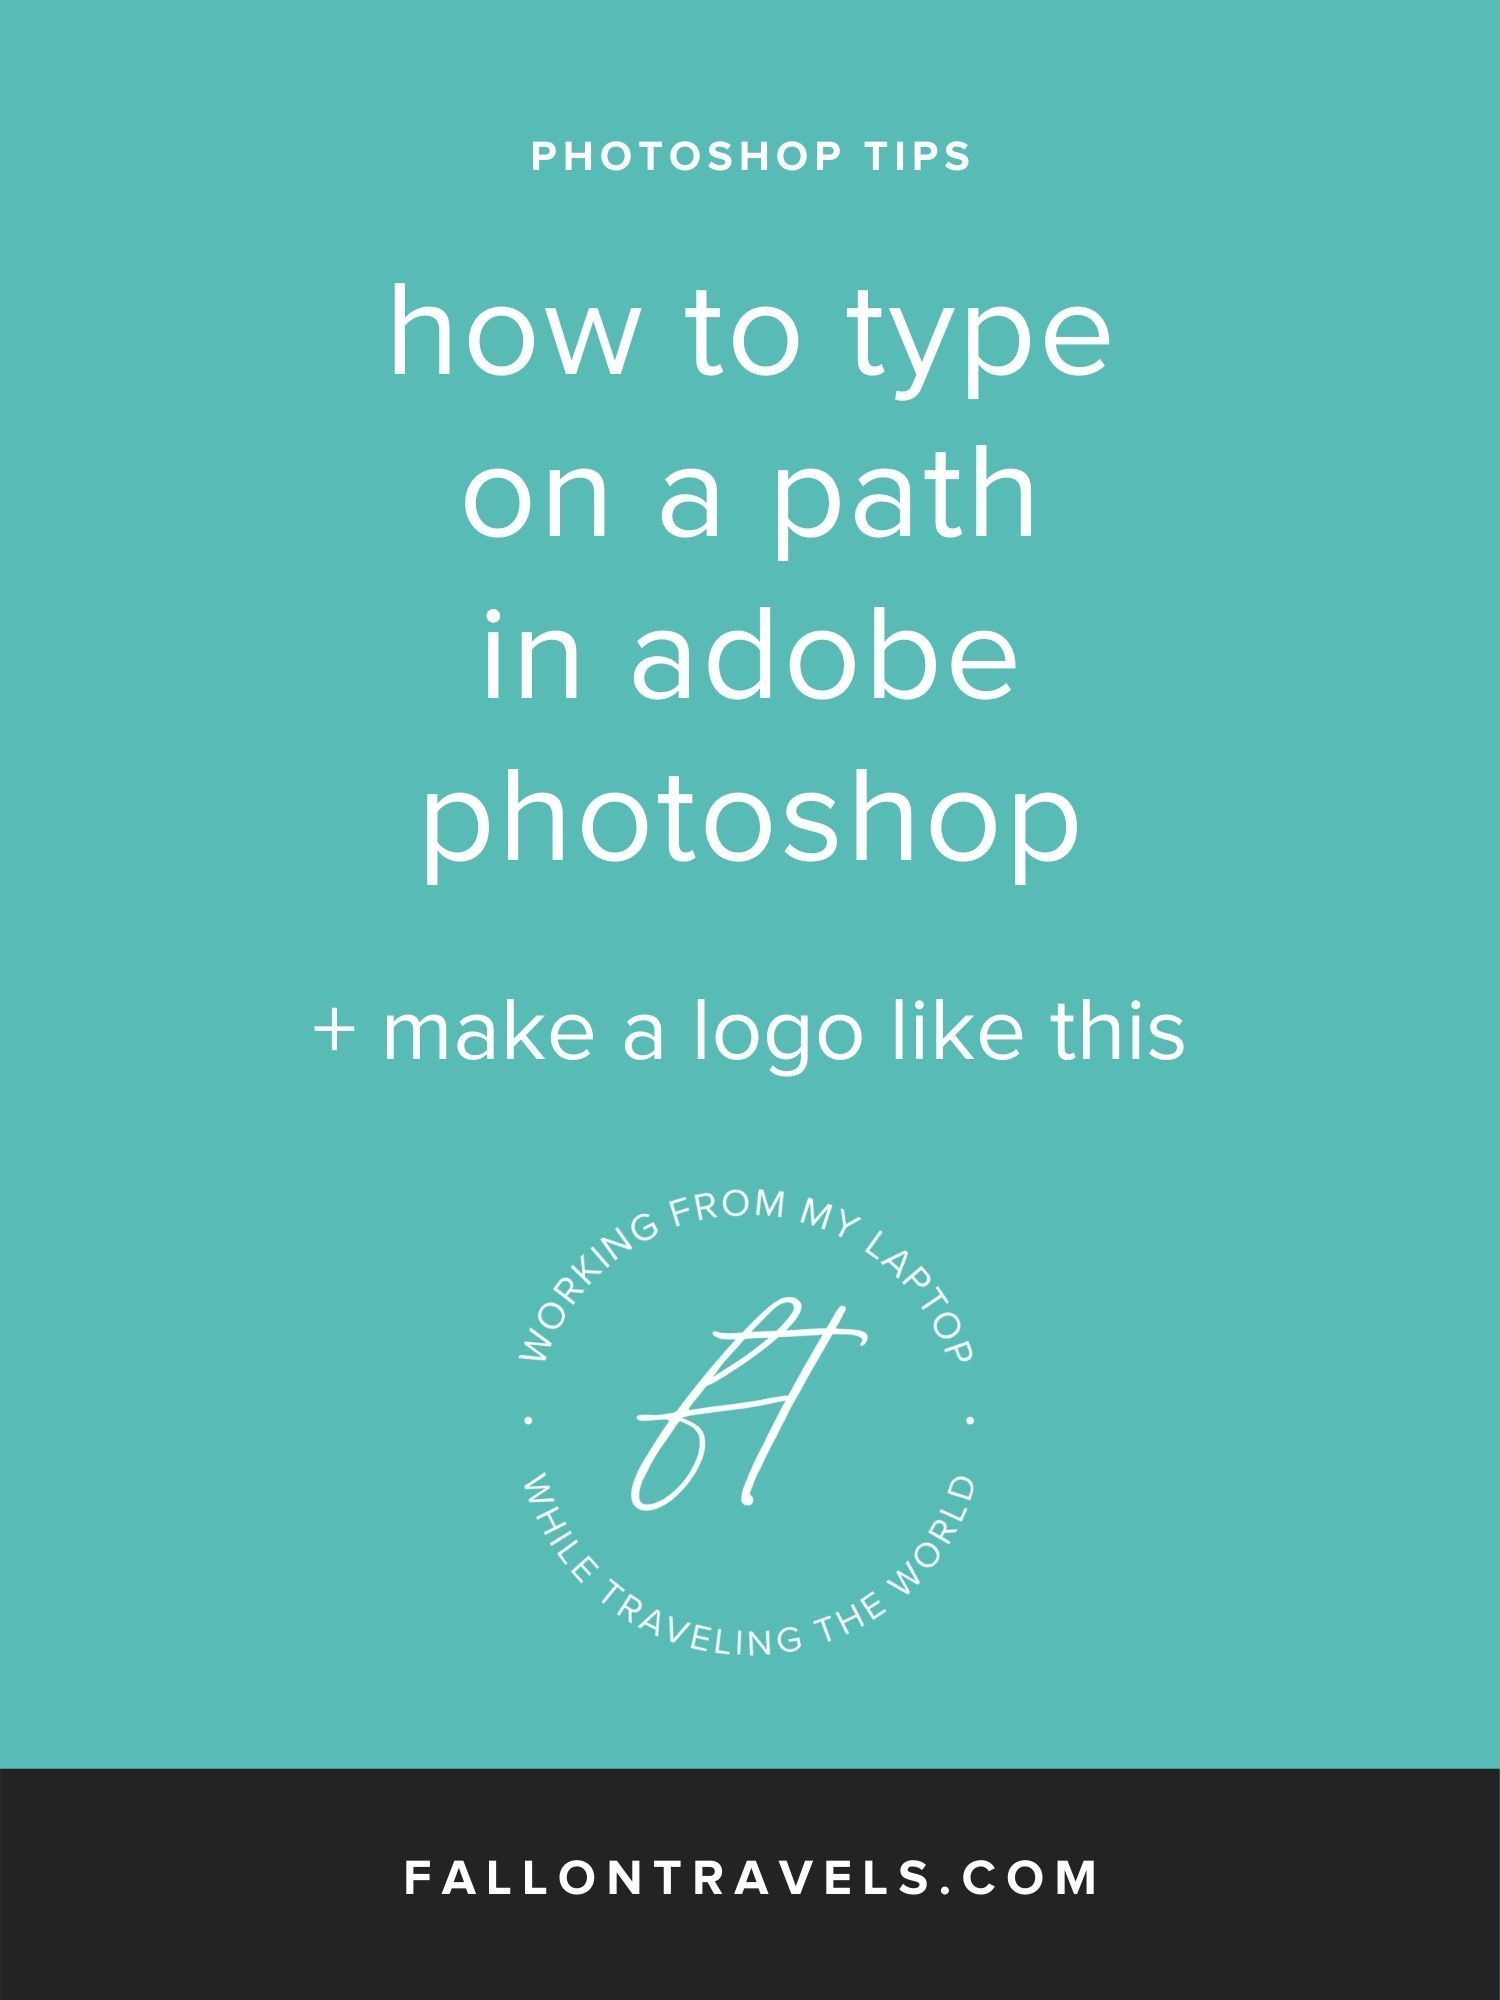 How to type on a path in — Fallon Travels